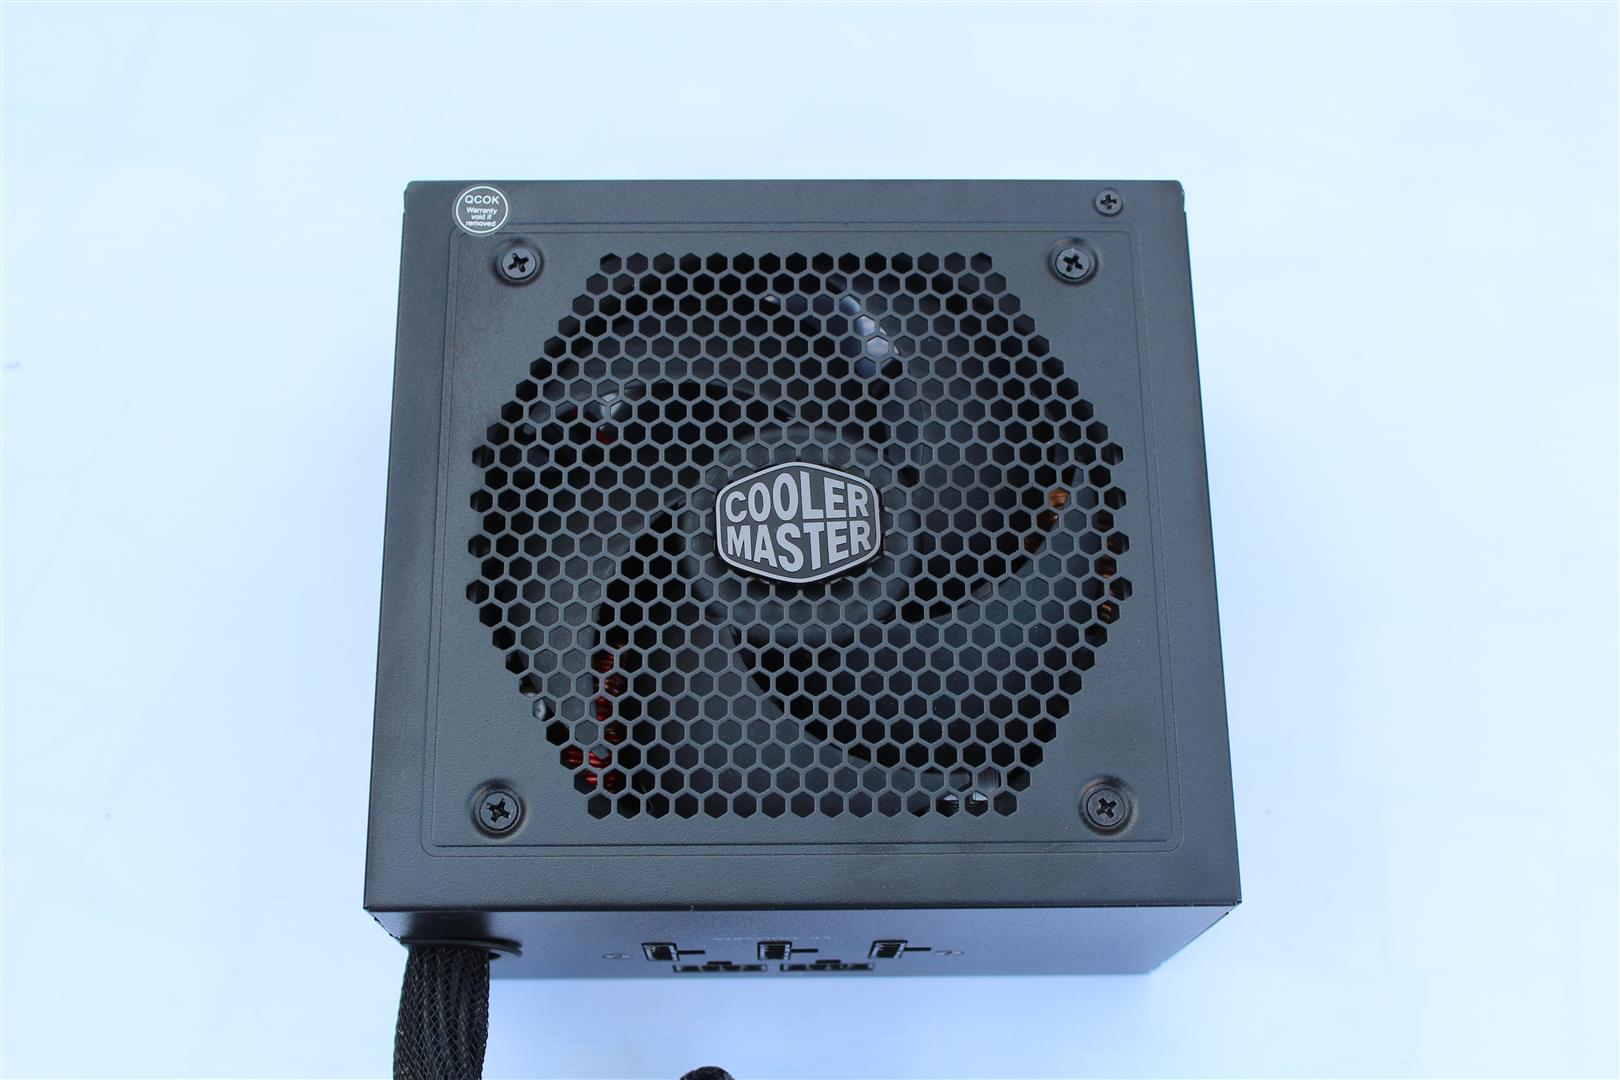 Cooler Master Masterwatt 750 Power Supply Review Pc Tek